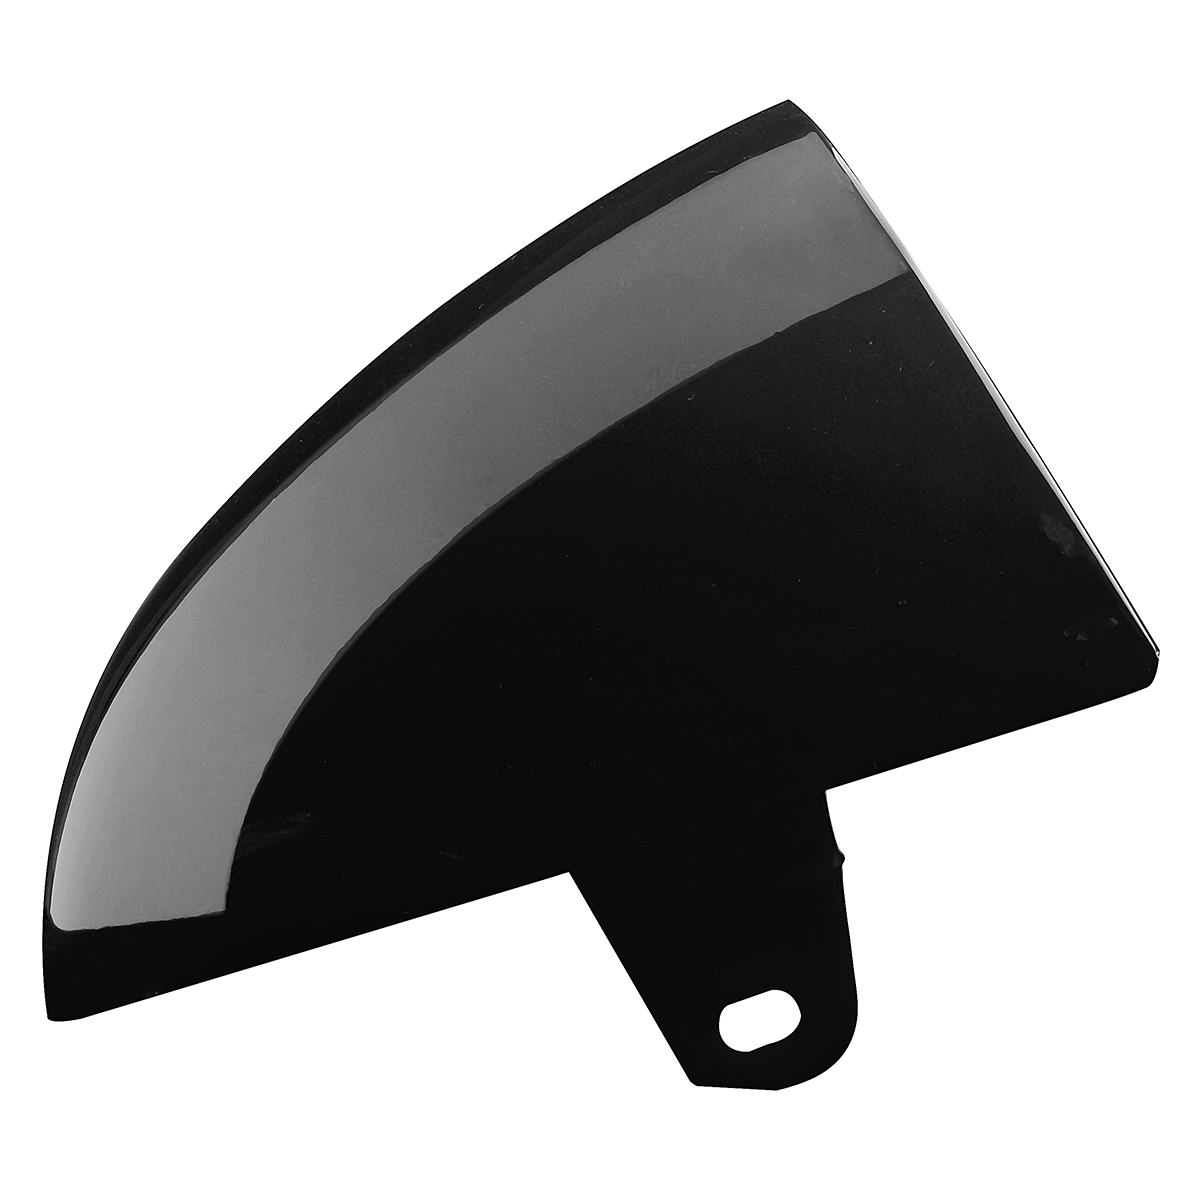 Motorcycle ABS Rear Seat Cowl Cover Universal For Cafe Racer Compartment Seat